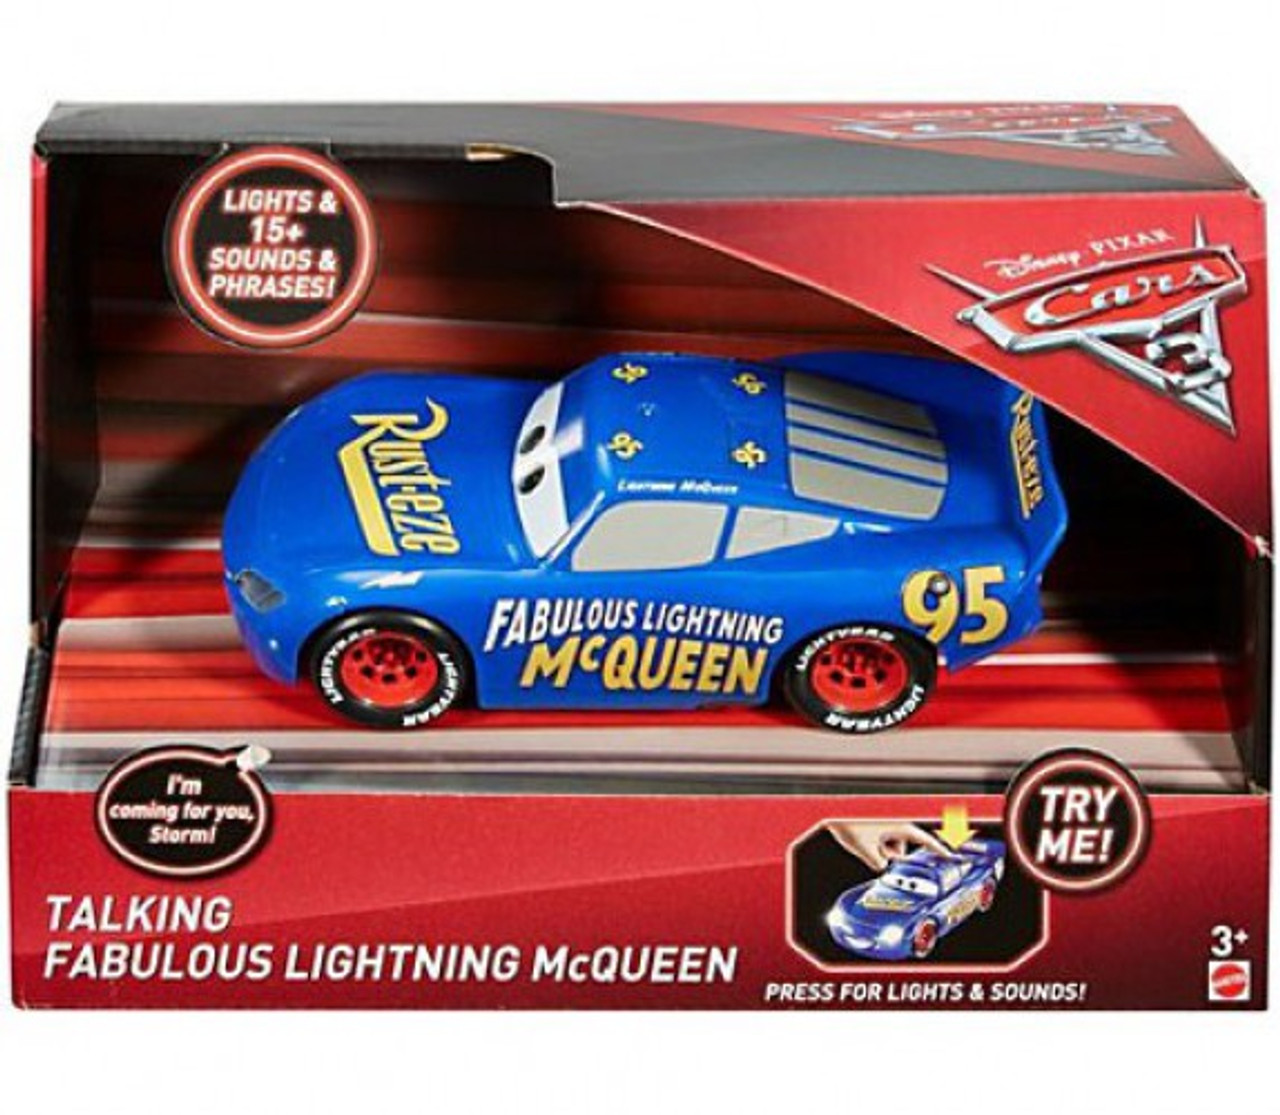 Disney Pixar Cars Cars 3 Fabulous Lightning Mcqueen 121 Talking